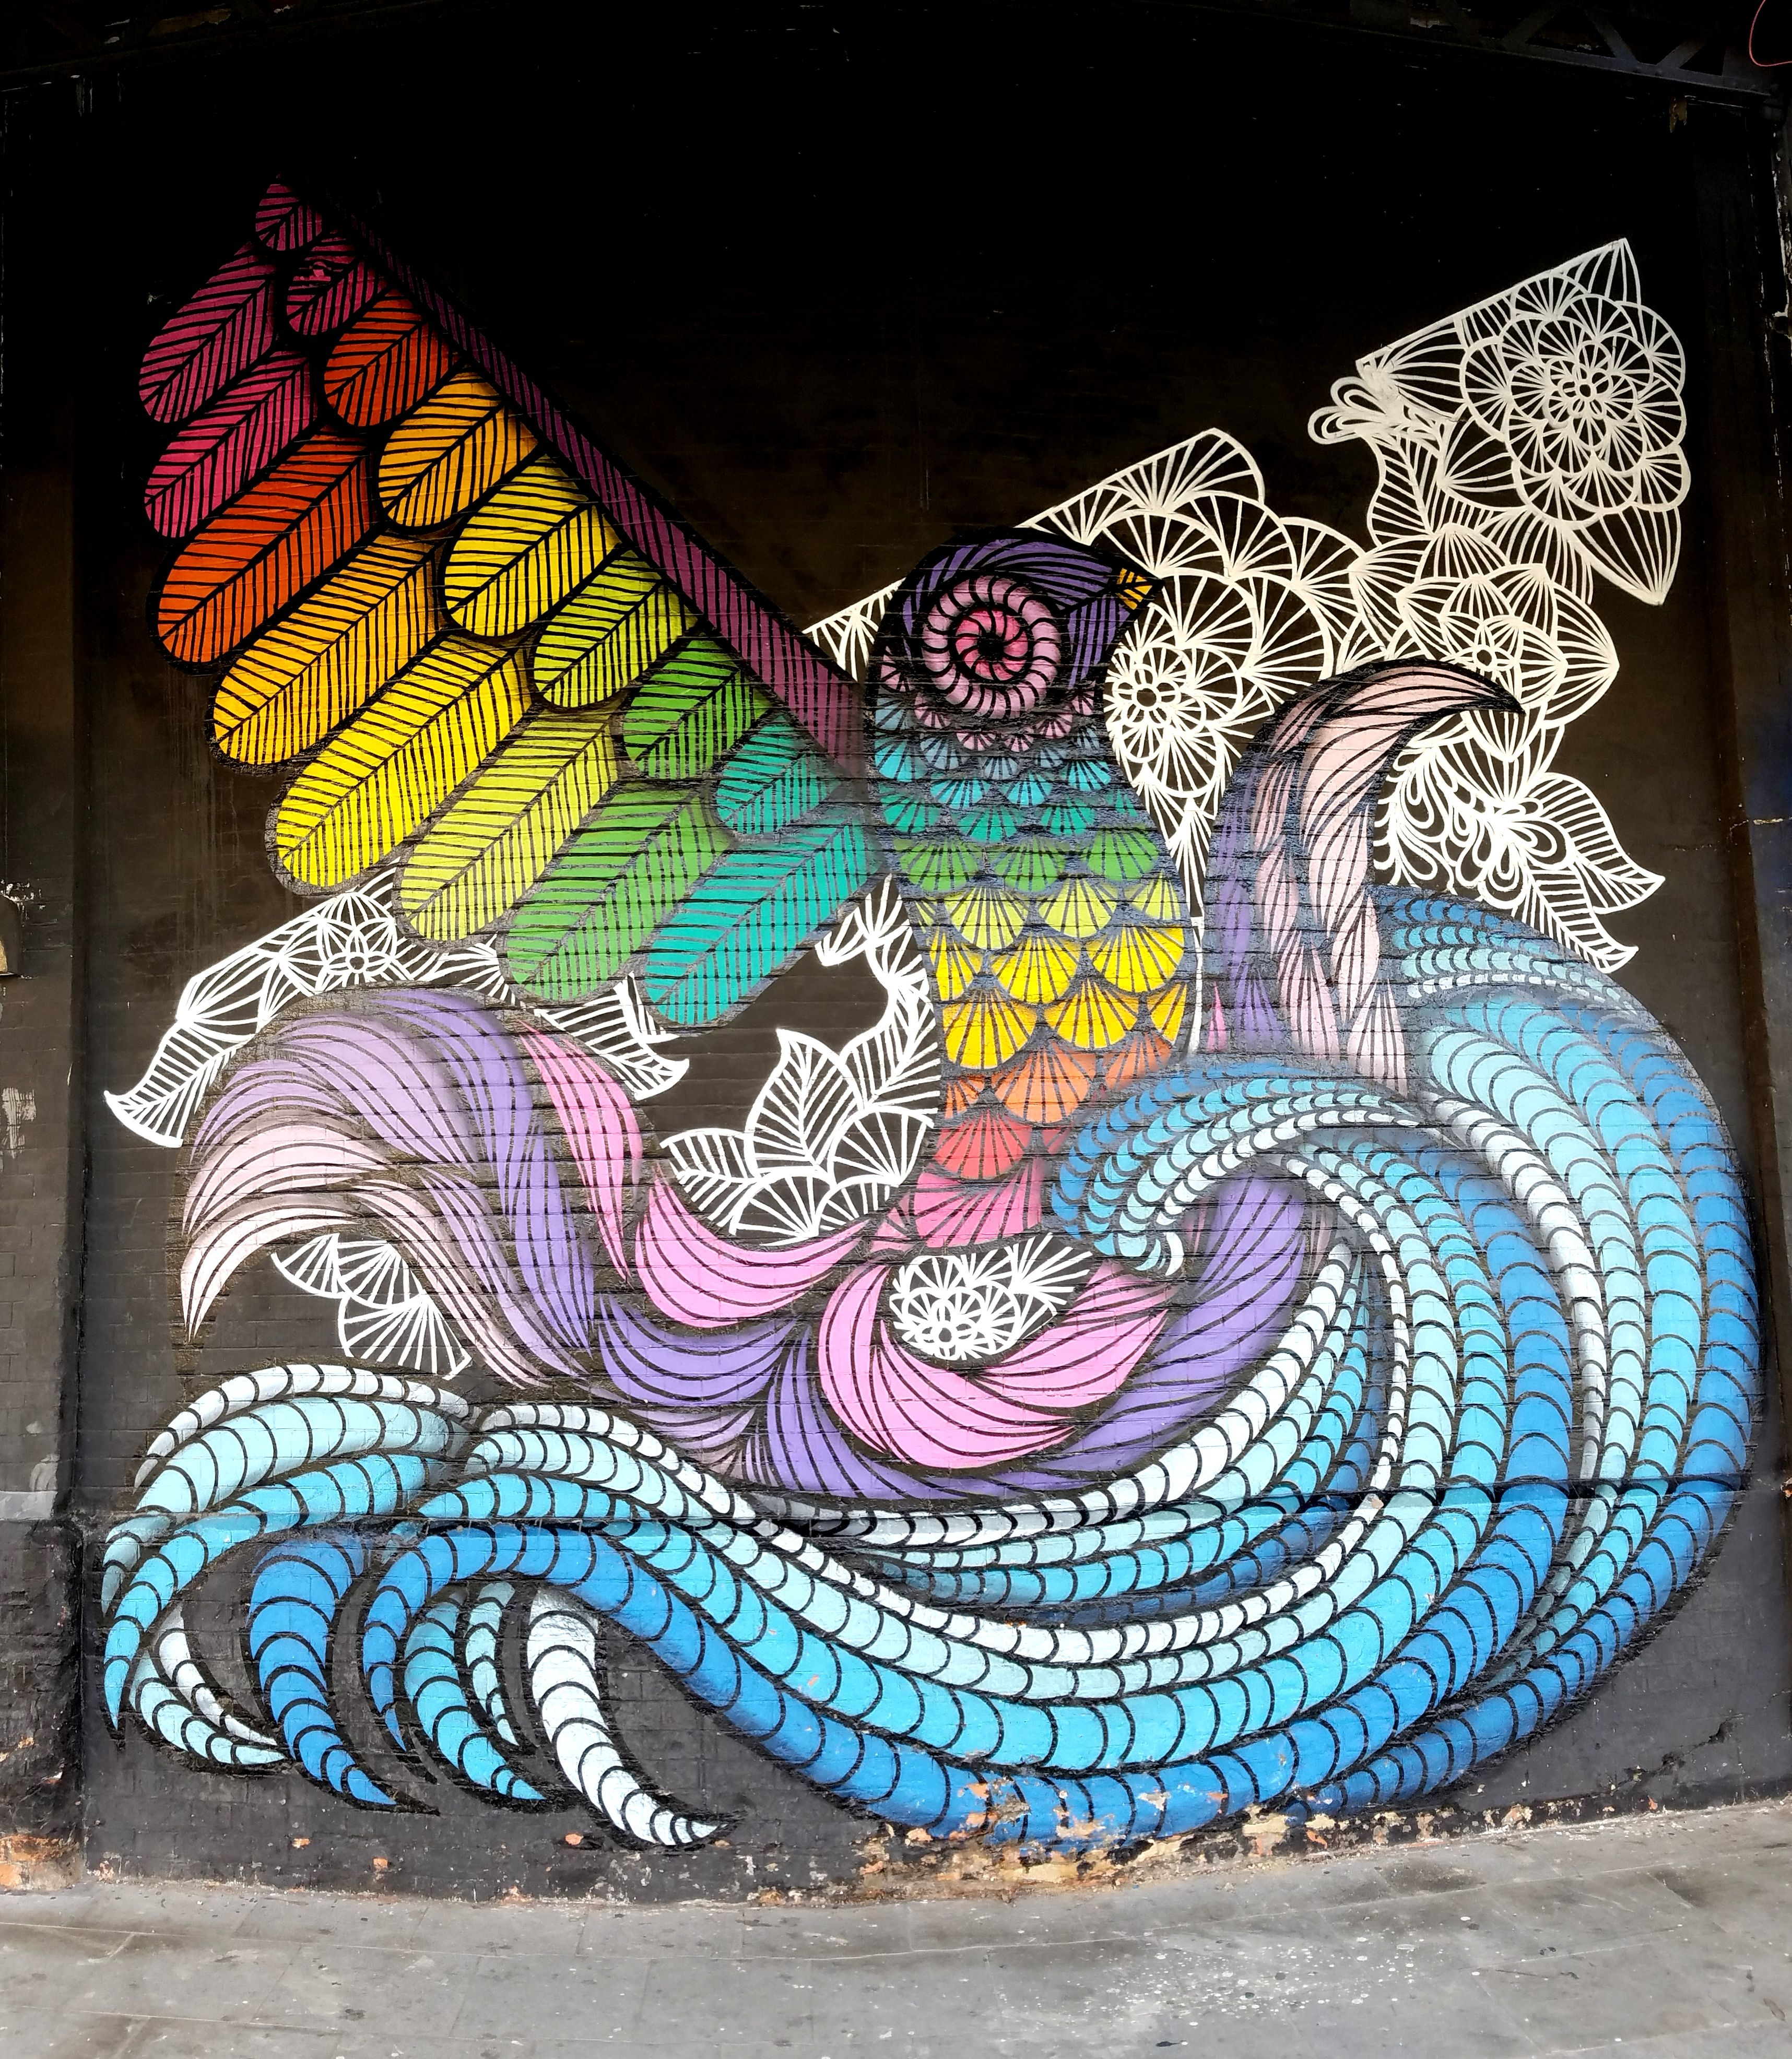 Rio de janeiro brasil street art graffiti this piece is from the artist rafa mon a straight but fantastically ardent fighter for lgbt rights